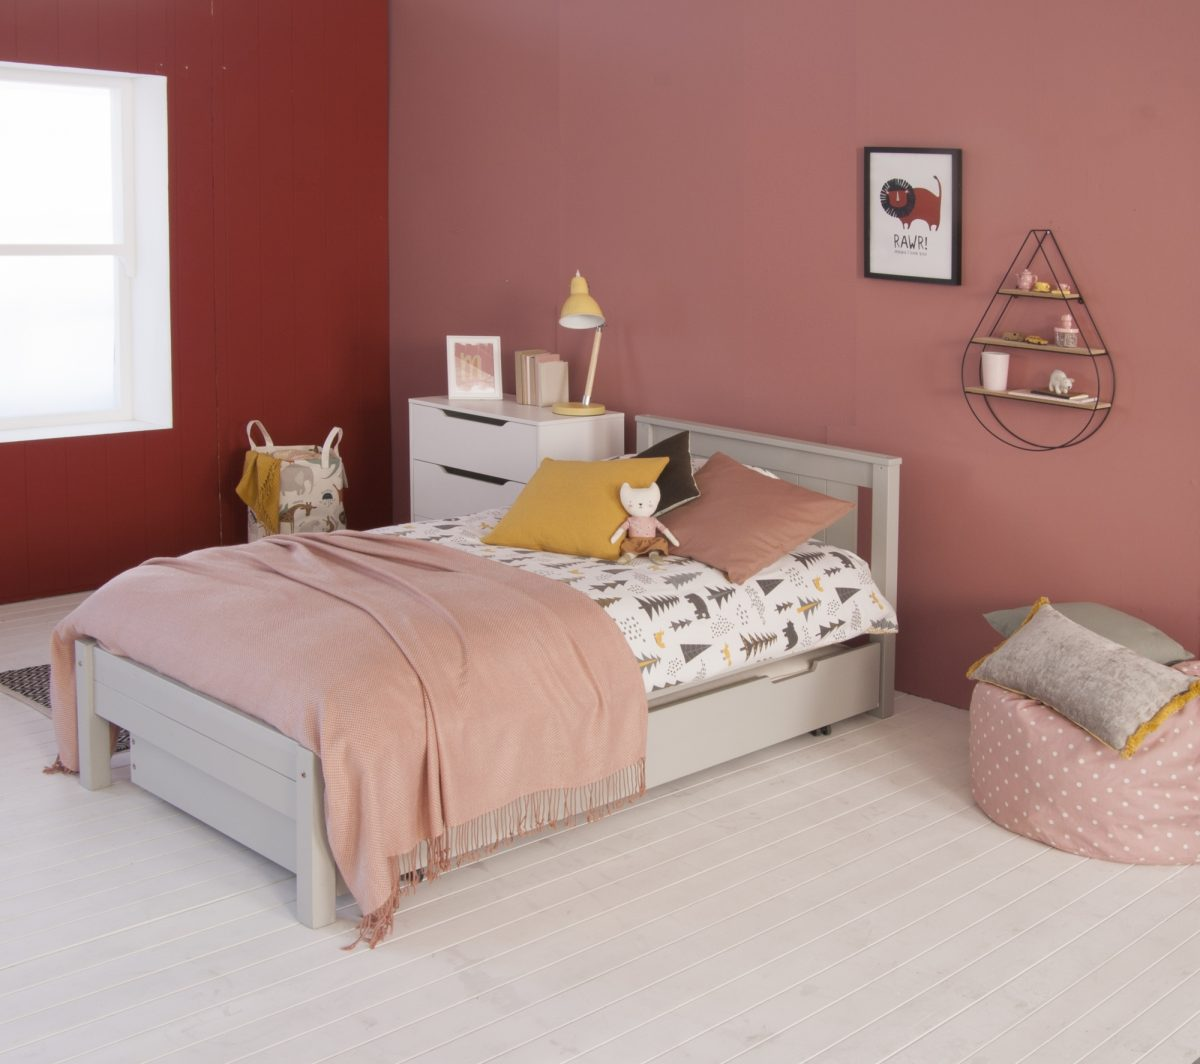 SBT006 DGR classic beech bed and trundle